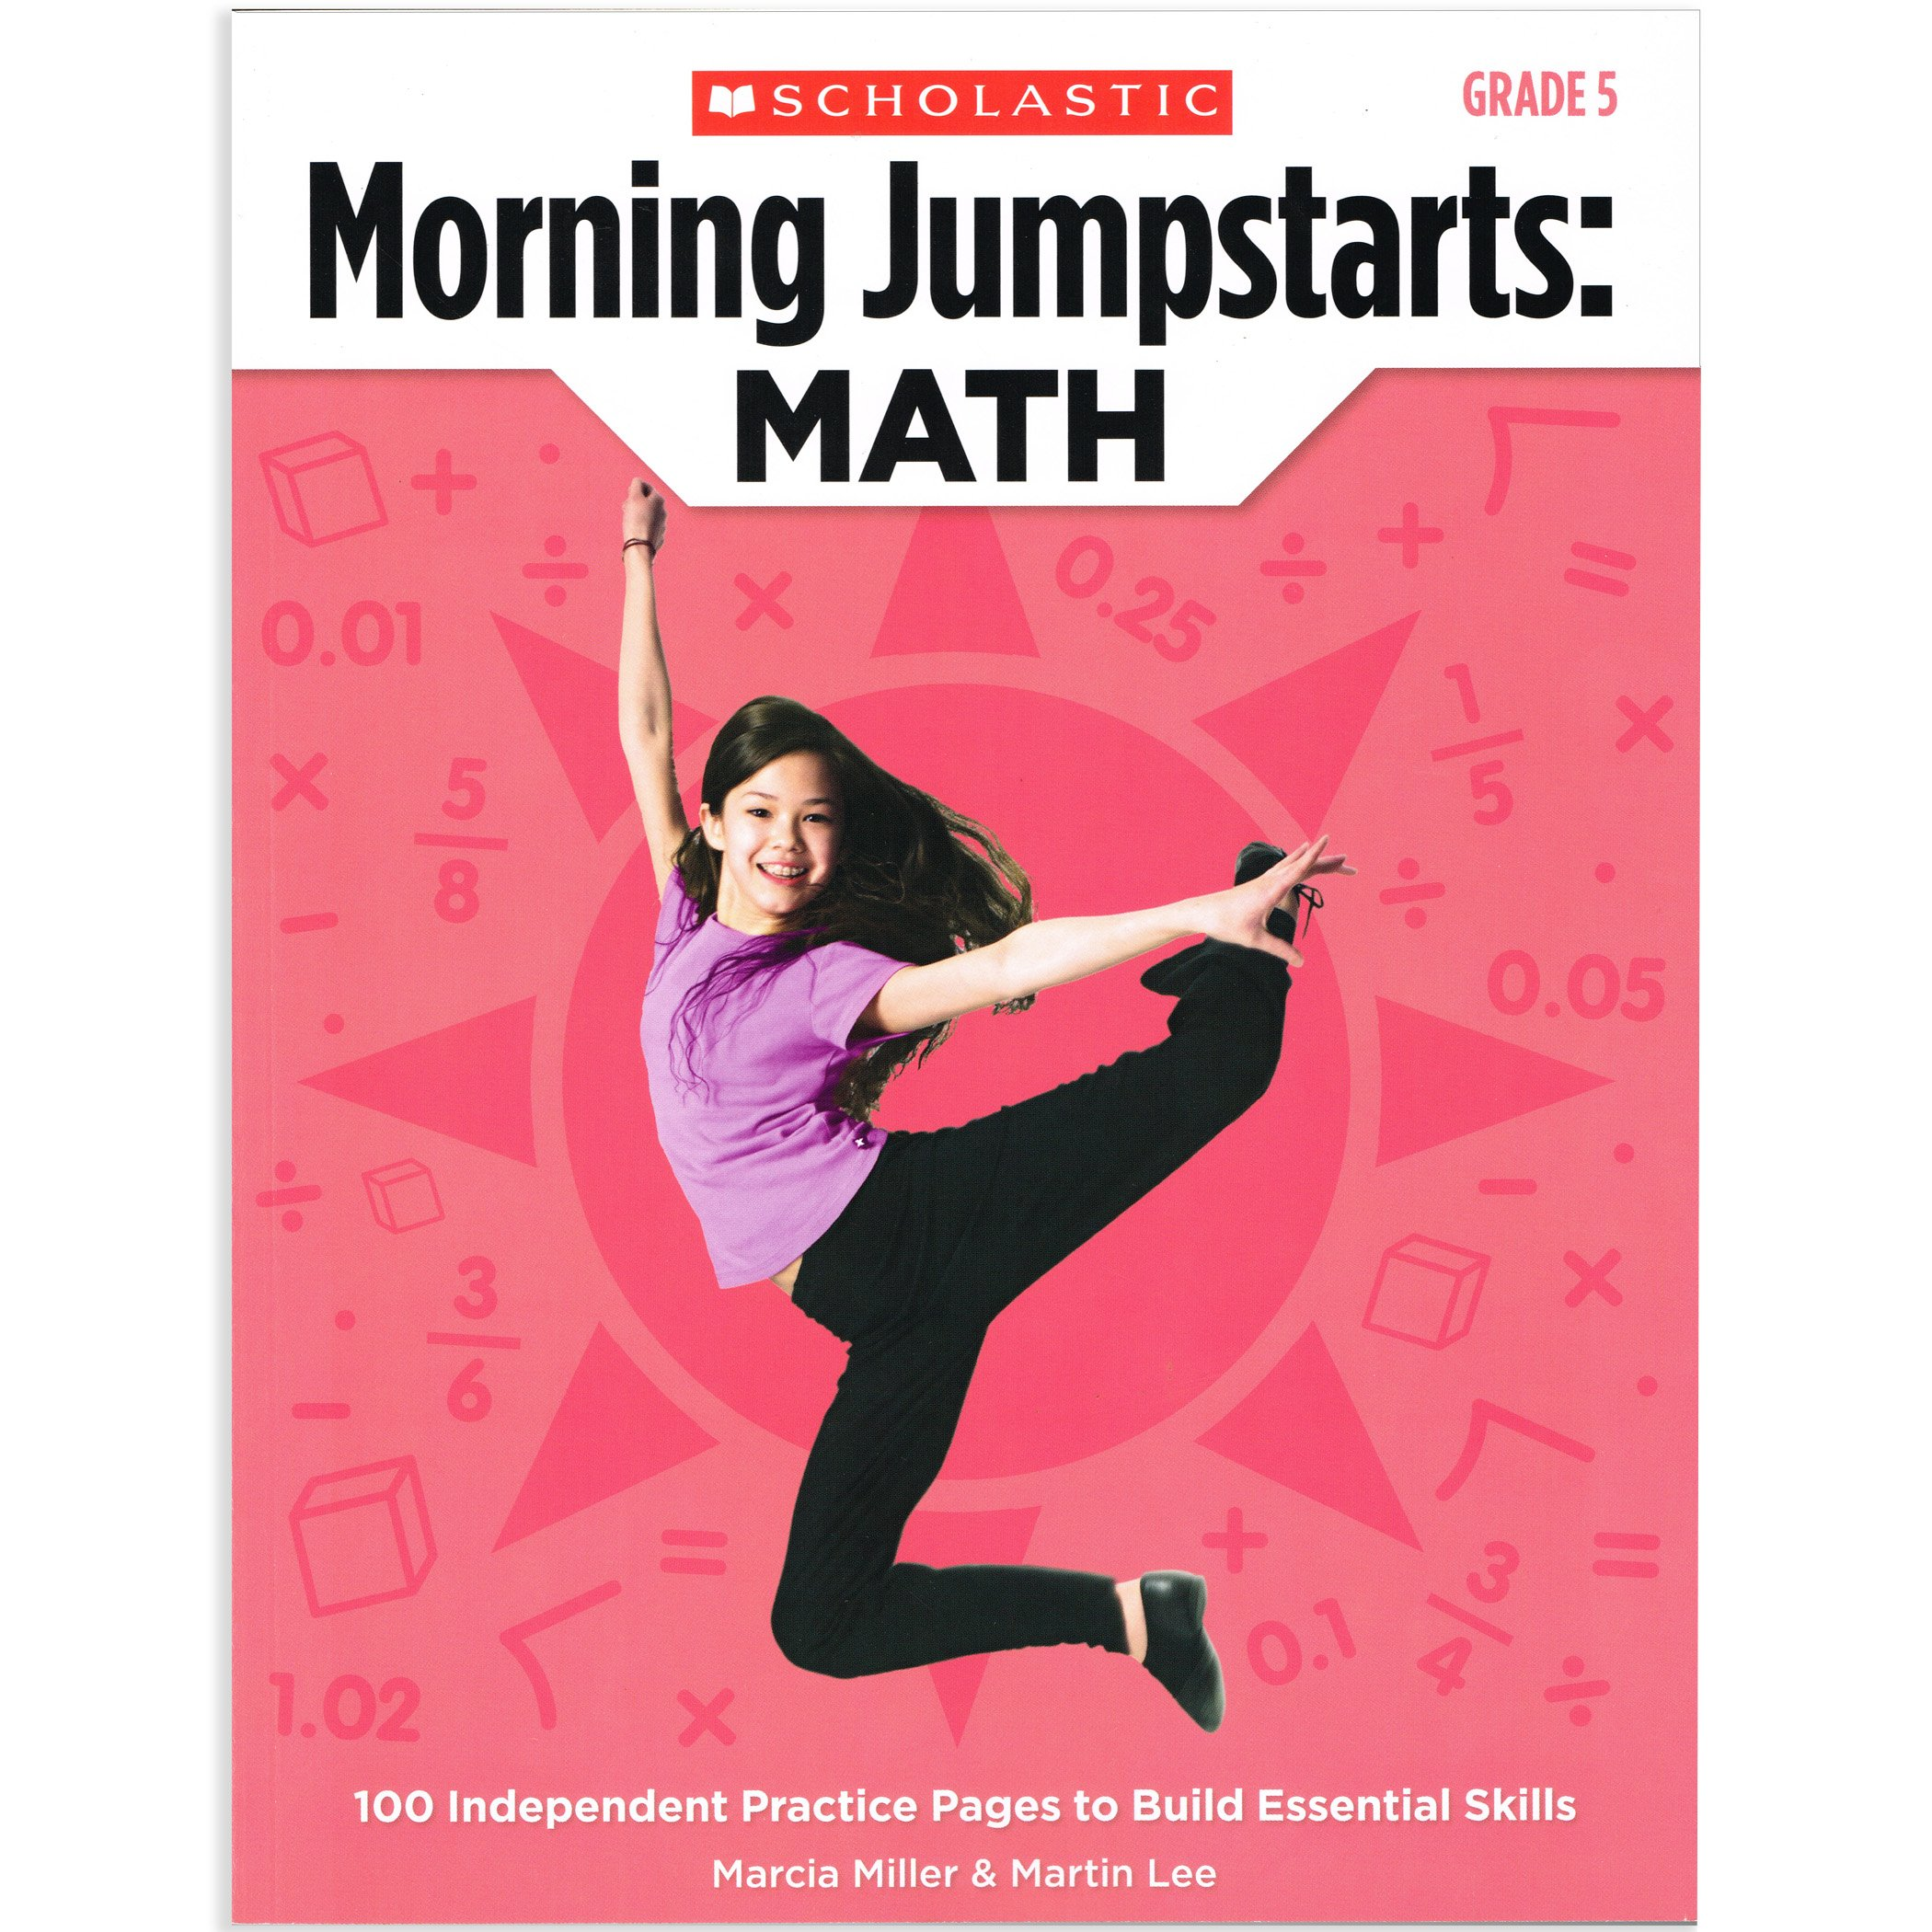 Download Morning Jumpstarts: Math (Grade 5): 100 Independent Practice Pages to Build Essential Skills PDF